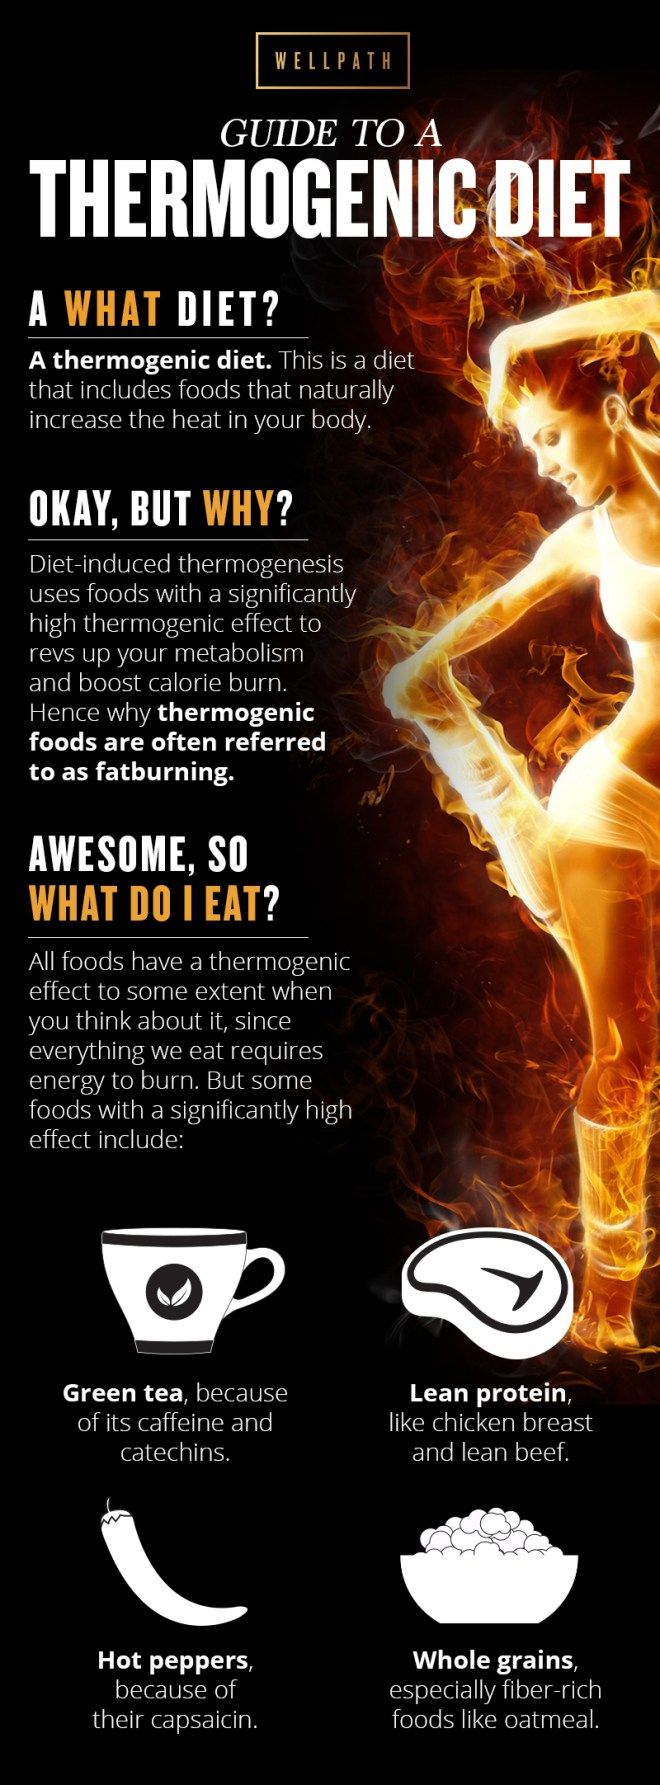 A thermogenic diet includes consuming foods that naturally increase the heat in your body.